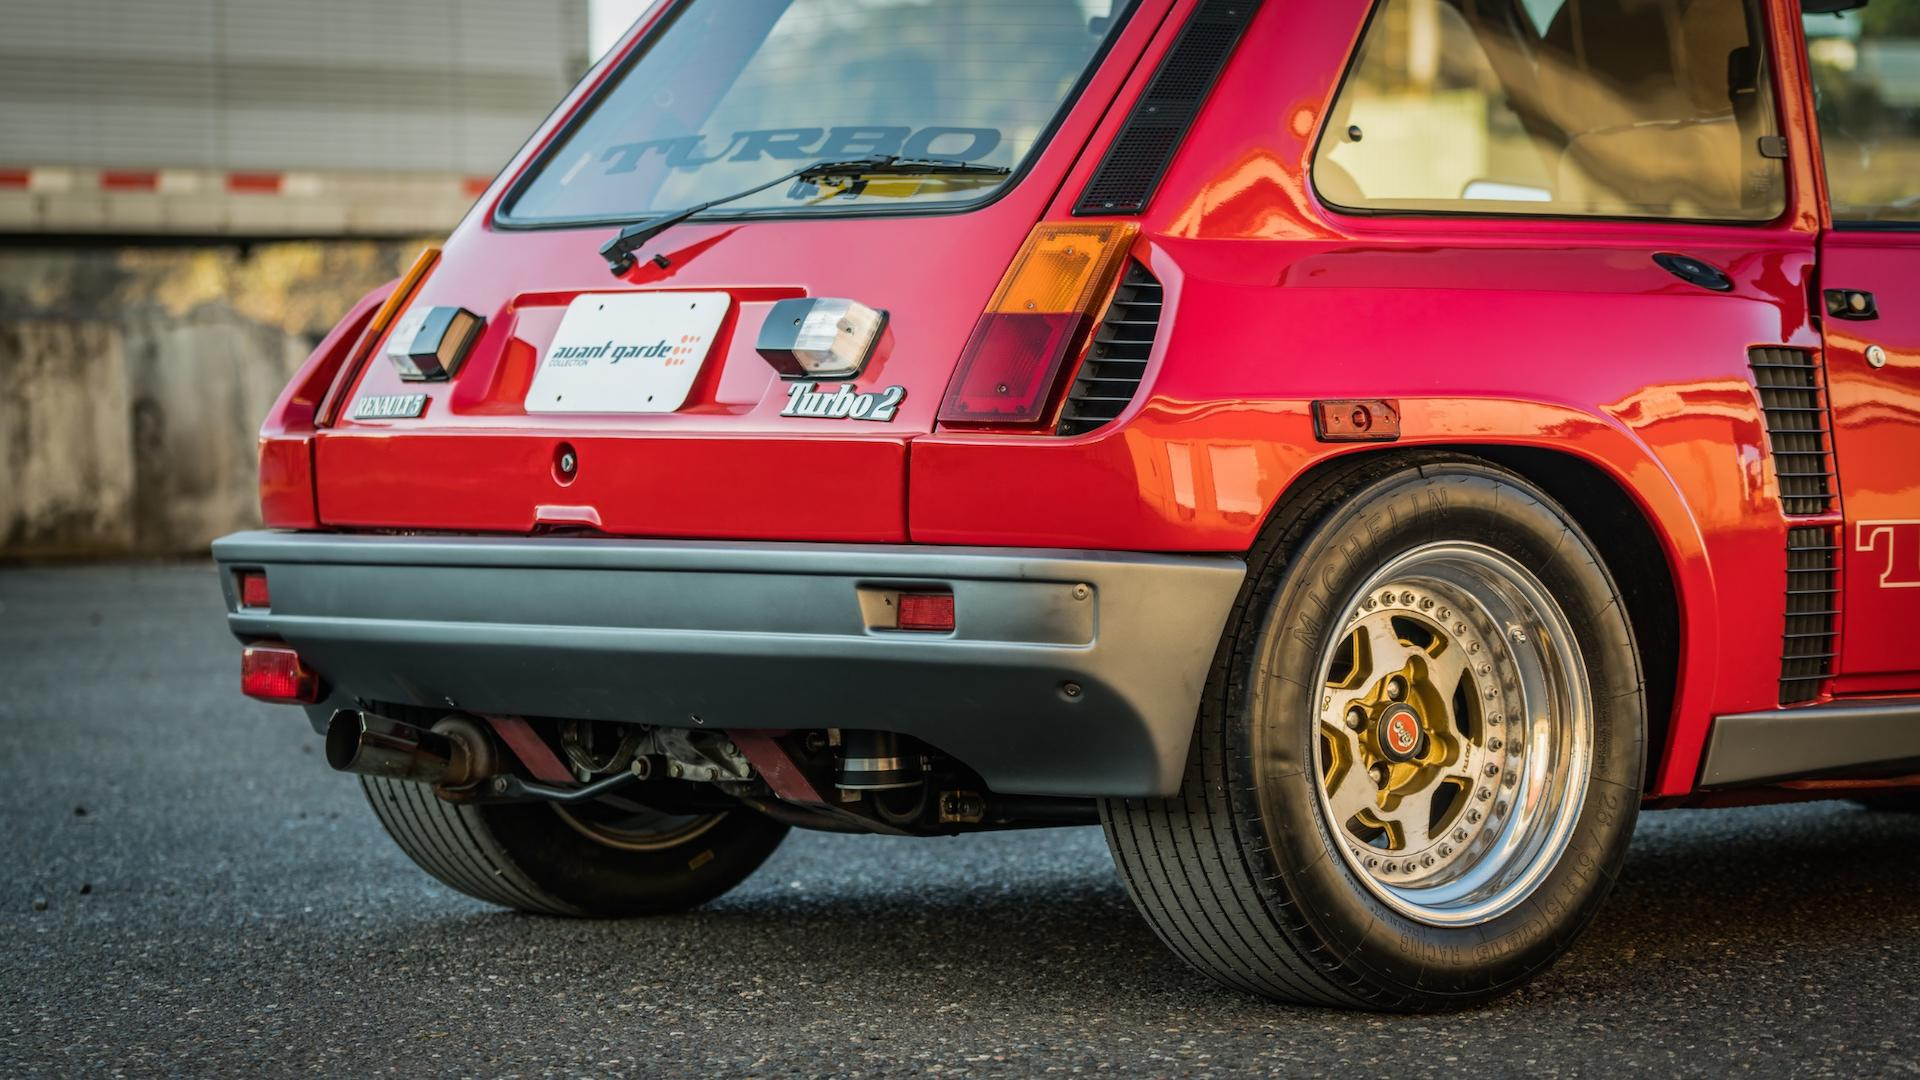 Renault_5_Turbo_2_Evo_26